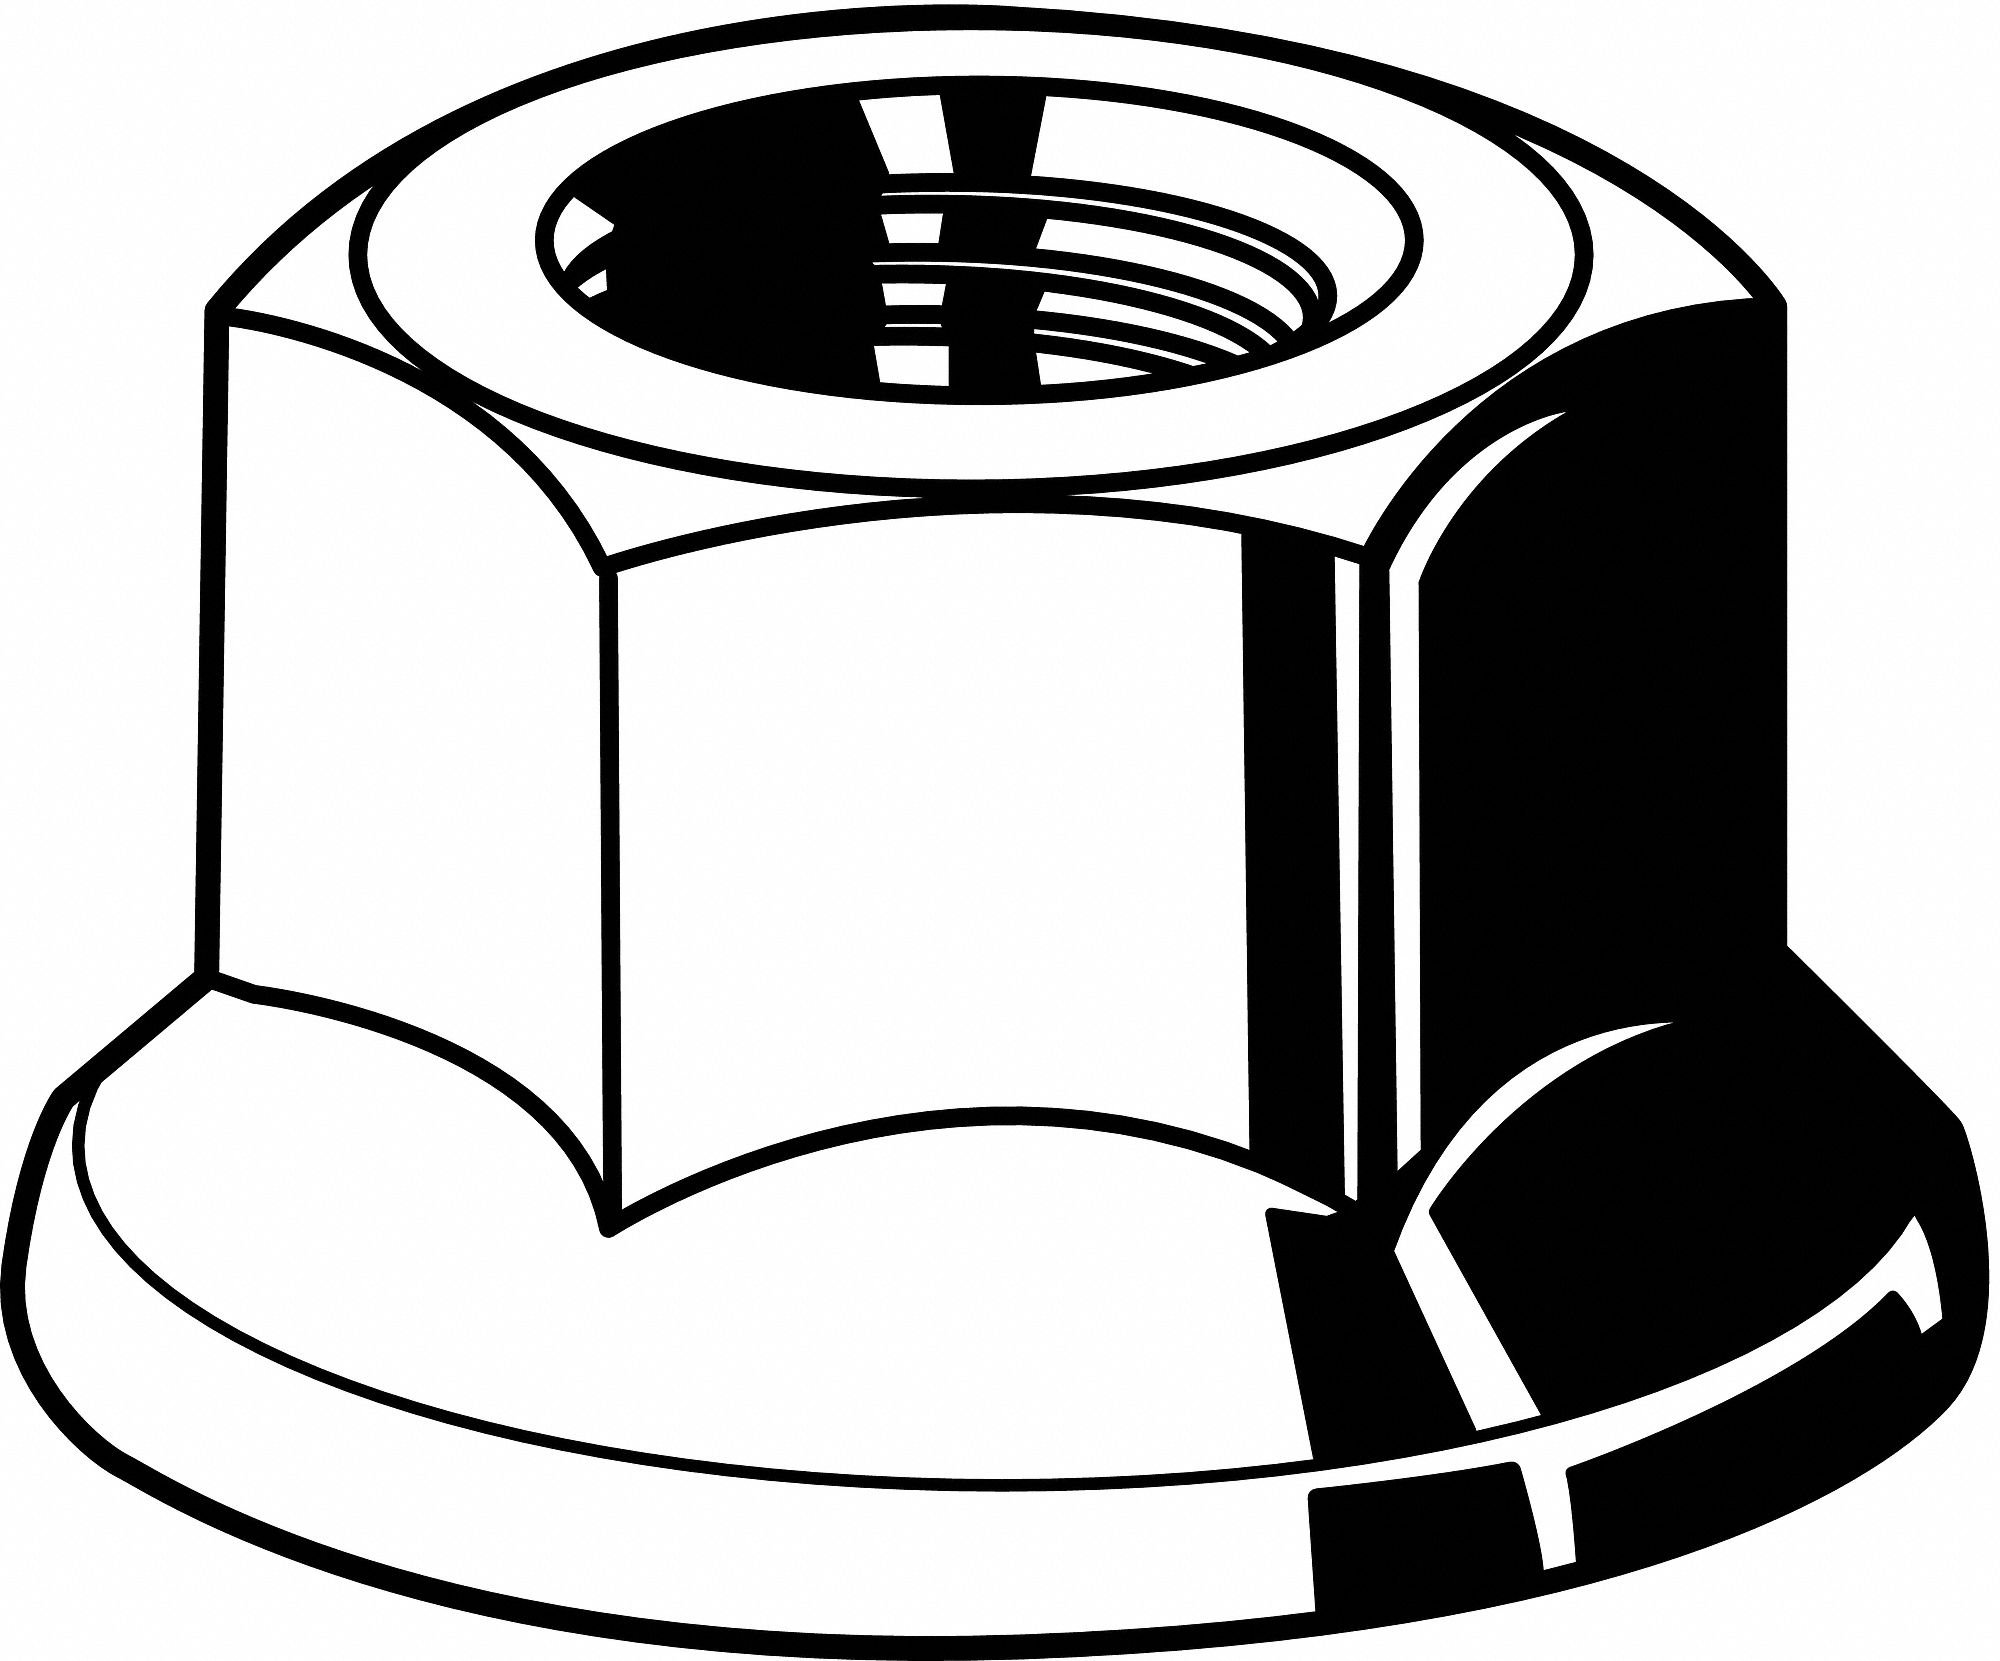 3/4''-10 Top Lock Flange Nut, Phosphate and Oil Finish, Grade C Steel, Right Hand, IFI-100/107, PK10